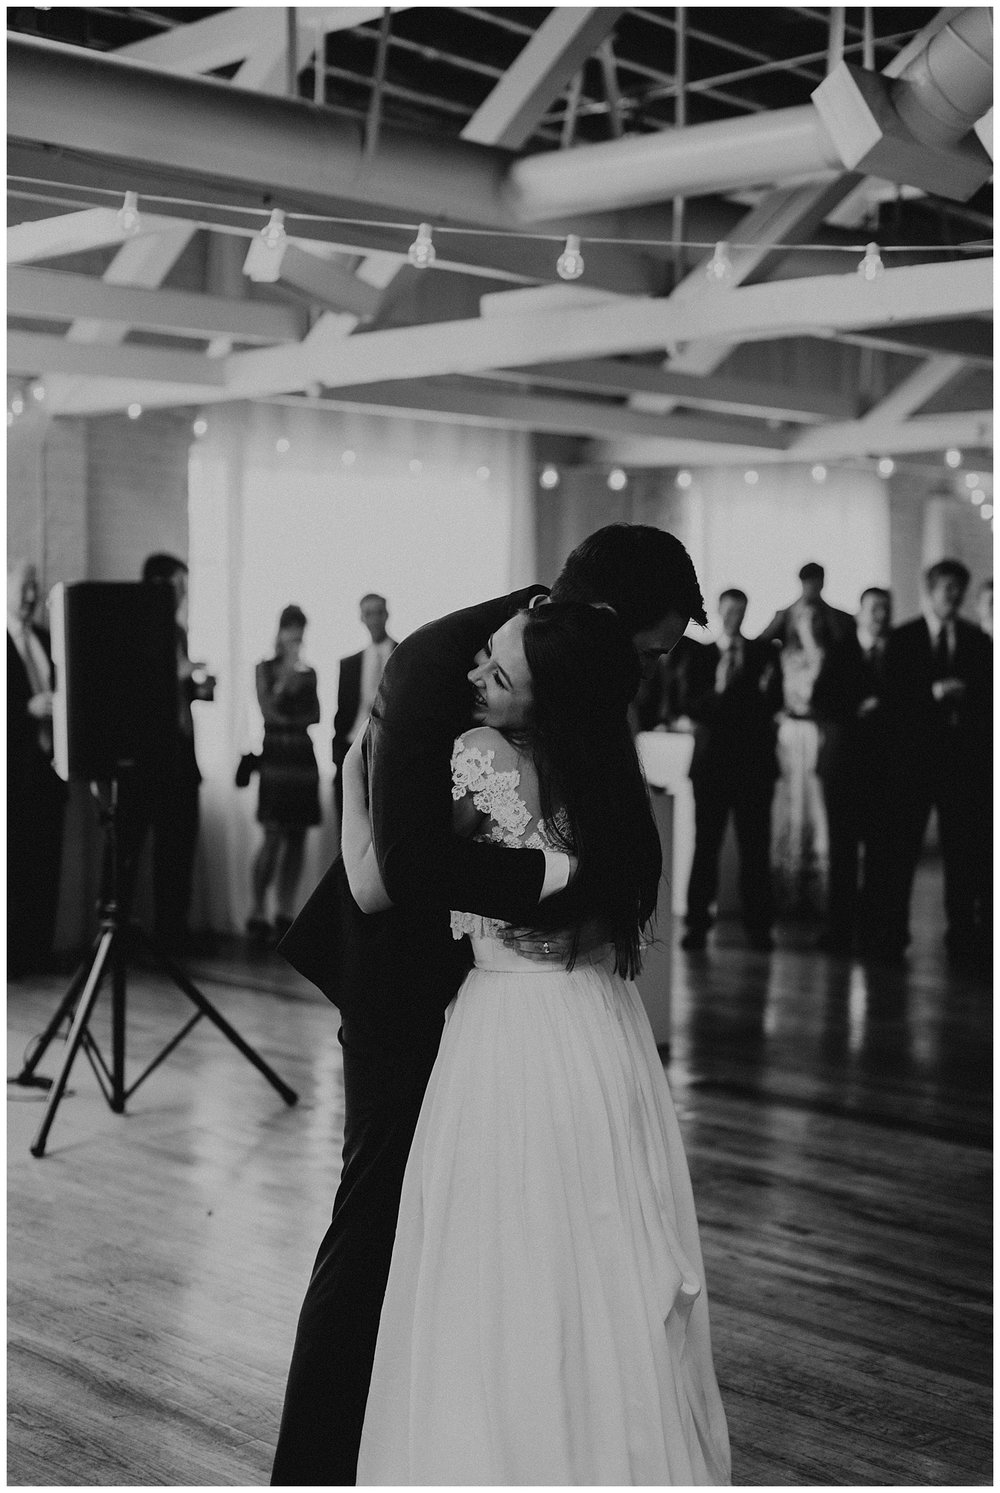 Madalynn Young Photography | Sarah Catherine + Will | Bridge Street Gallery and Loft | Atlanta Wedding Photographer_0401.jpg